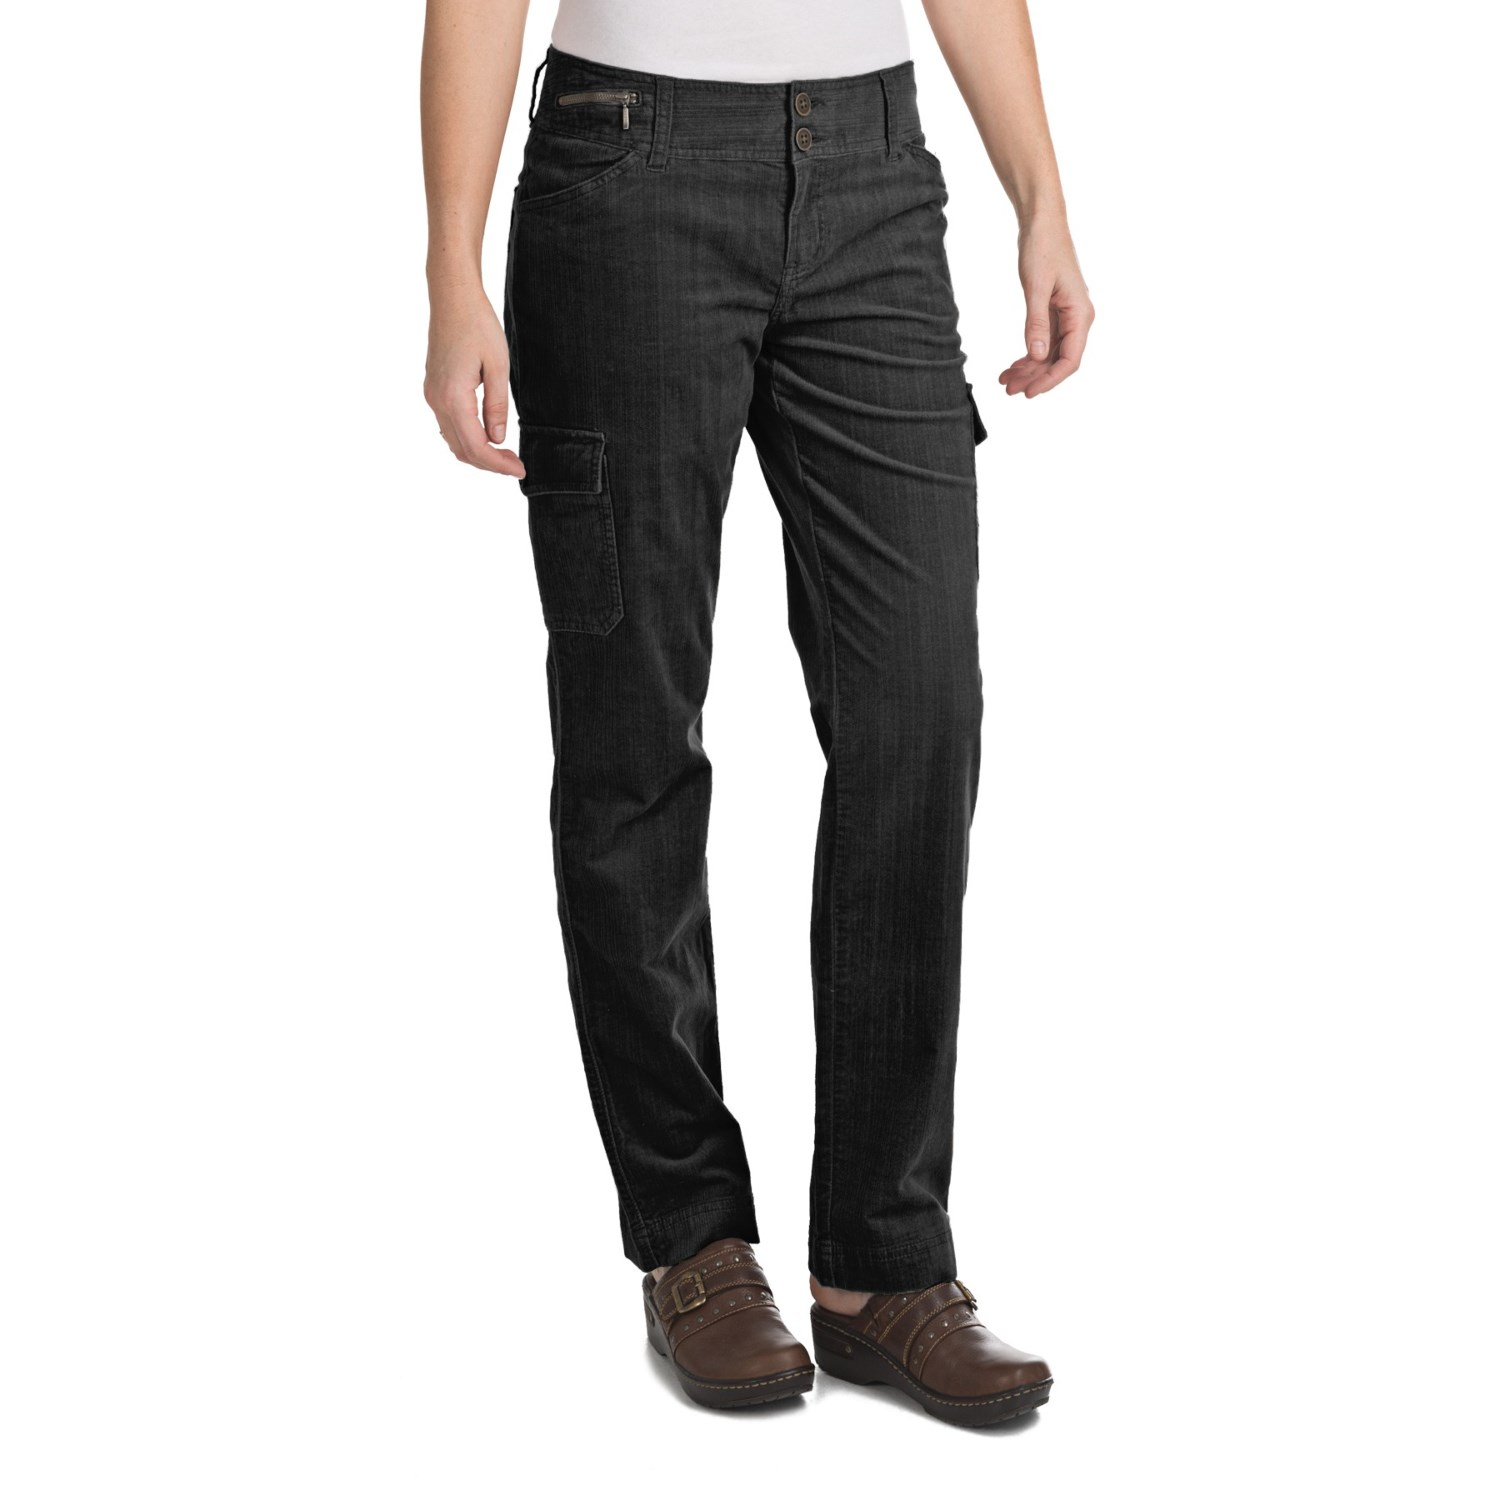 Shop from the world's largest selection and best deals for Men's Corduroy Pants. Free delivery and free returns on eBay Plus items. Skip to main content. eBay: Mens Black Corduroy Pants Size Condition is Pre-Owned. Sent with Australia Post Pre-Paid Parcel Post Satchel 3kg. AU $